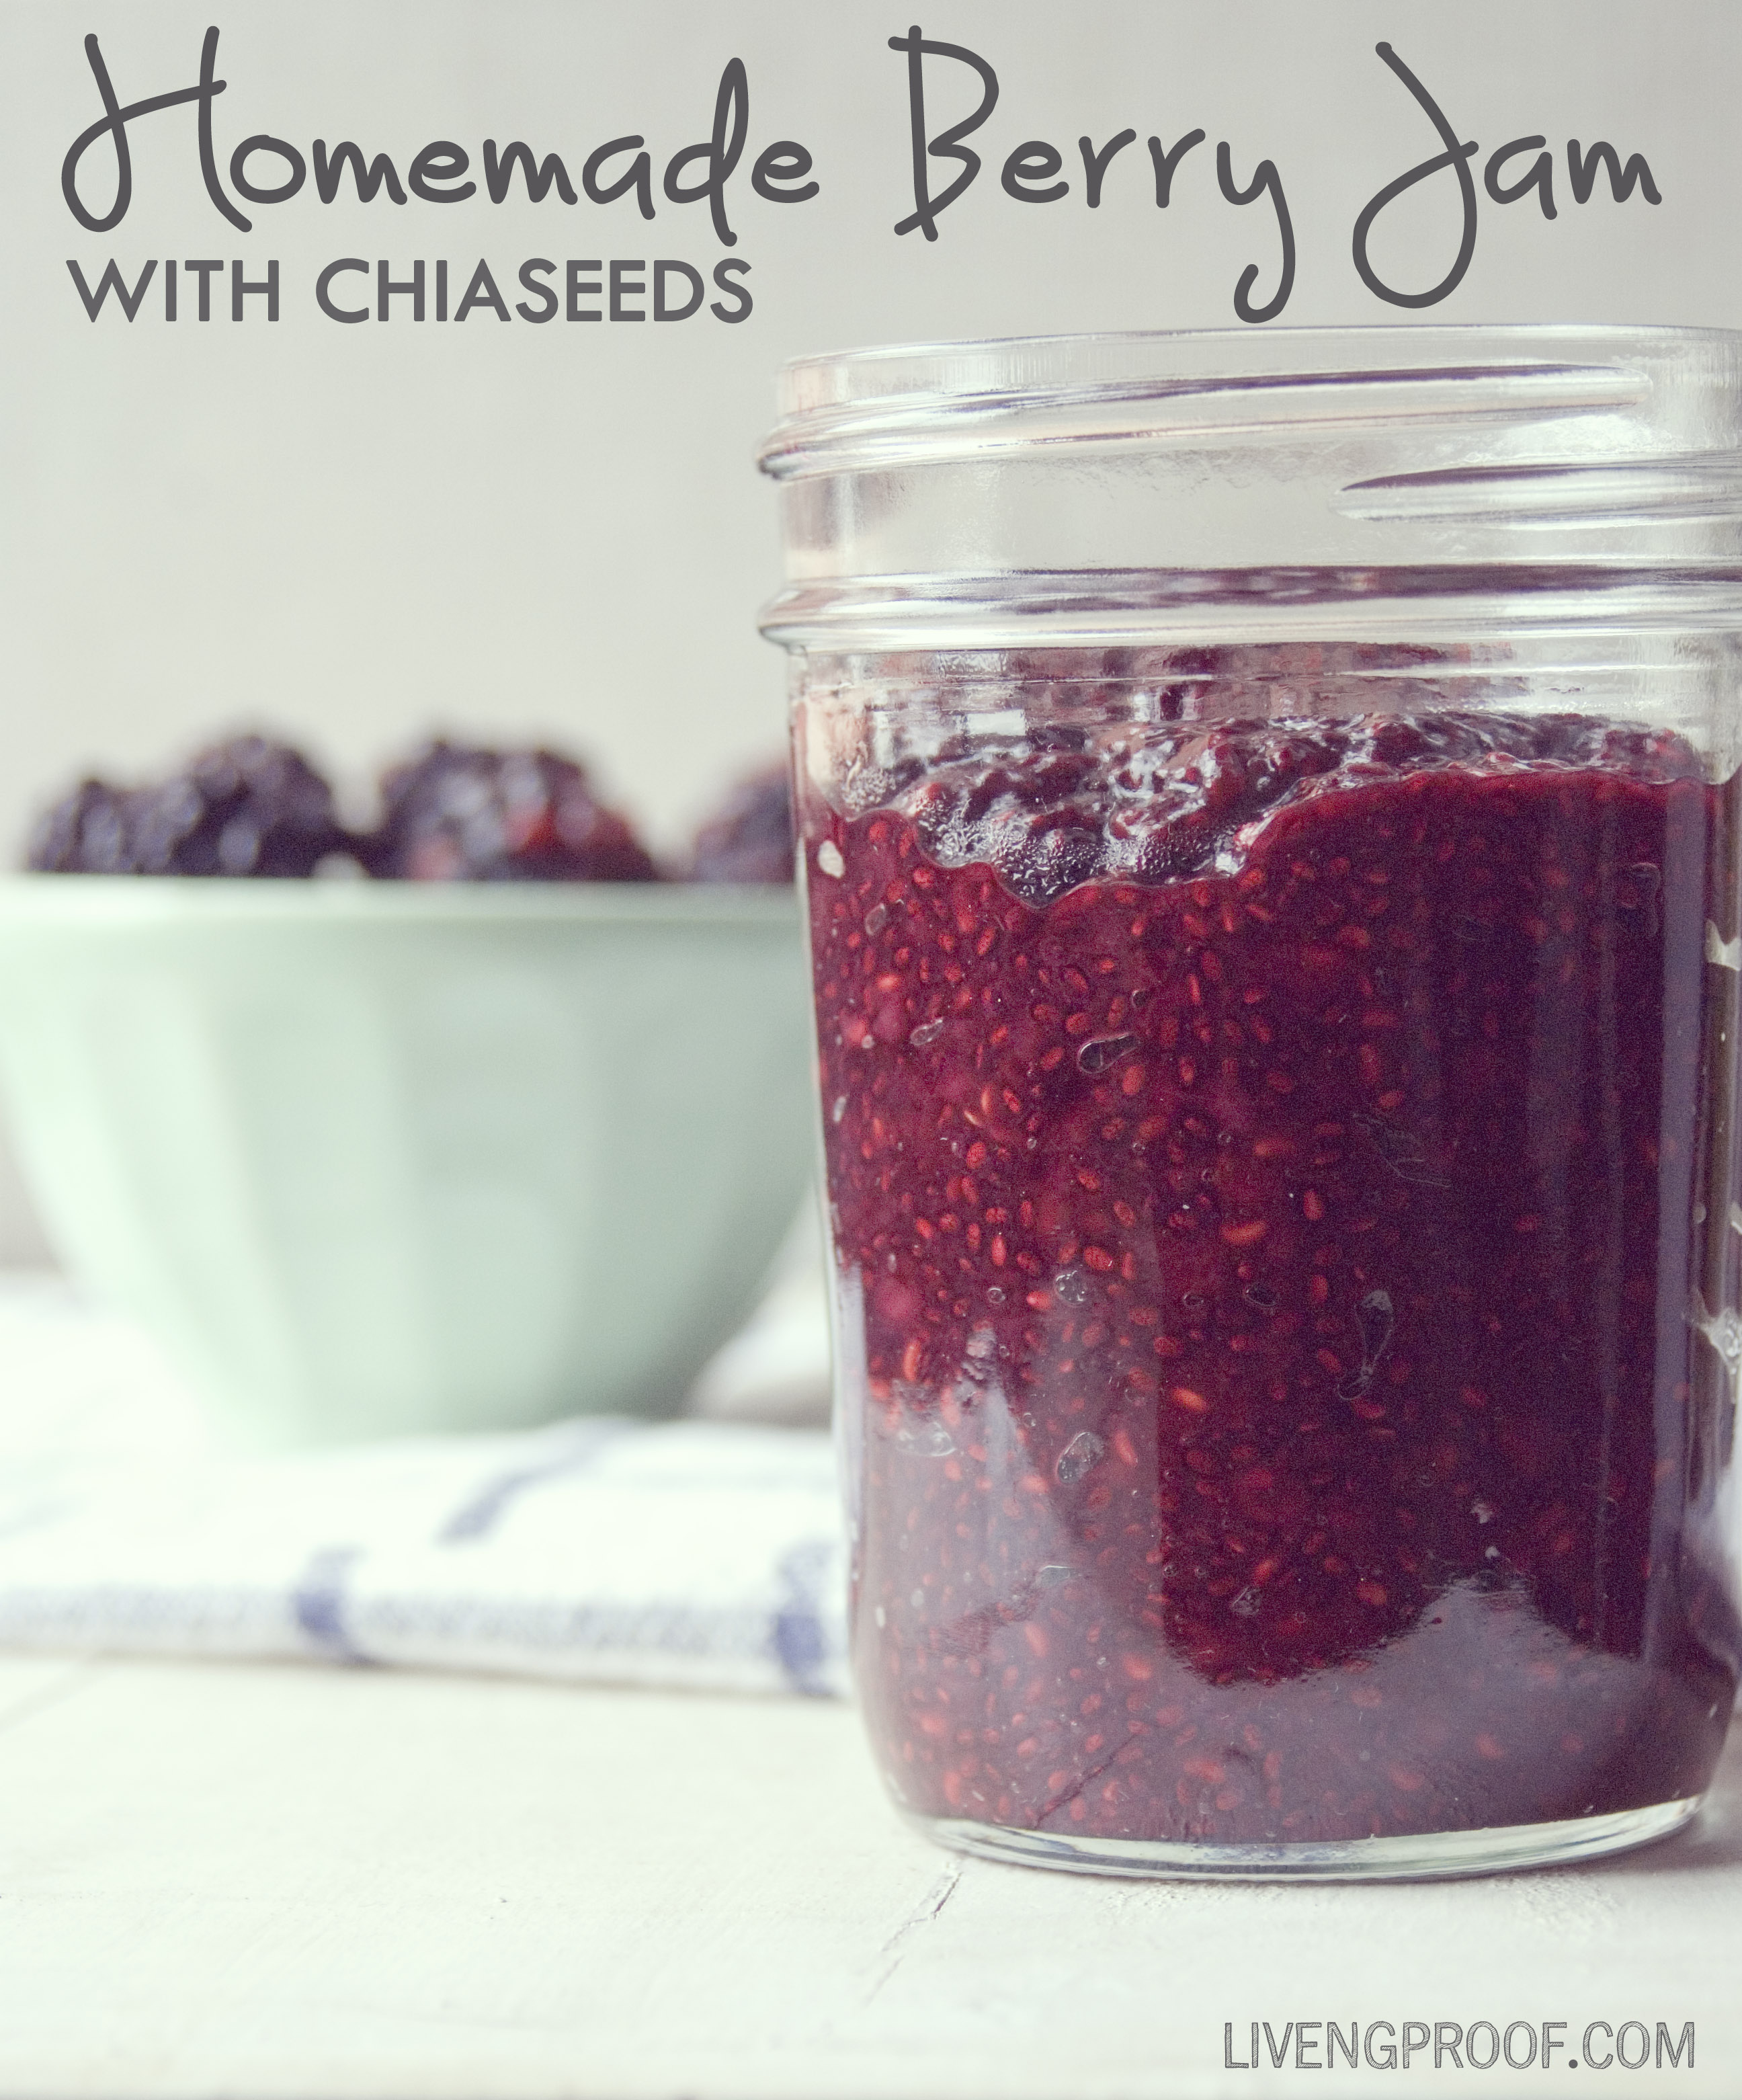 Homemade Berry Jam_livengproof.com